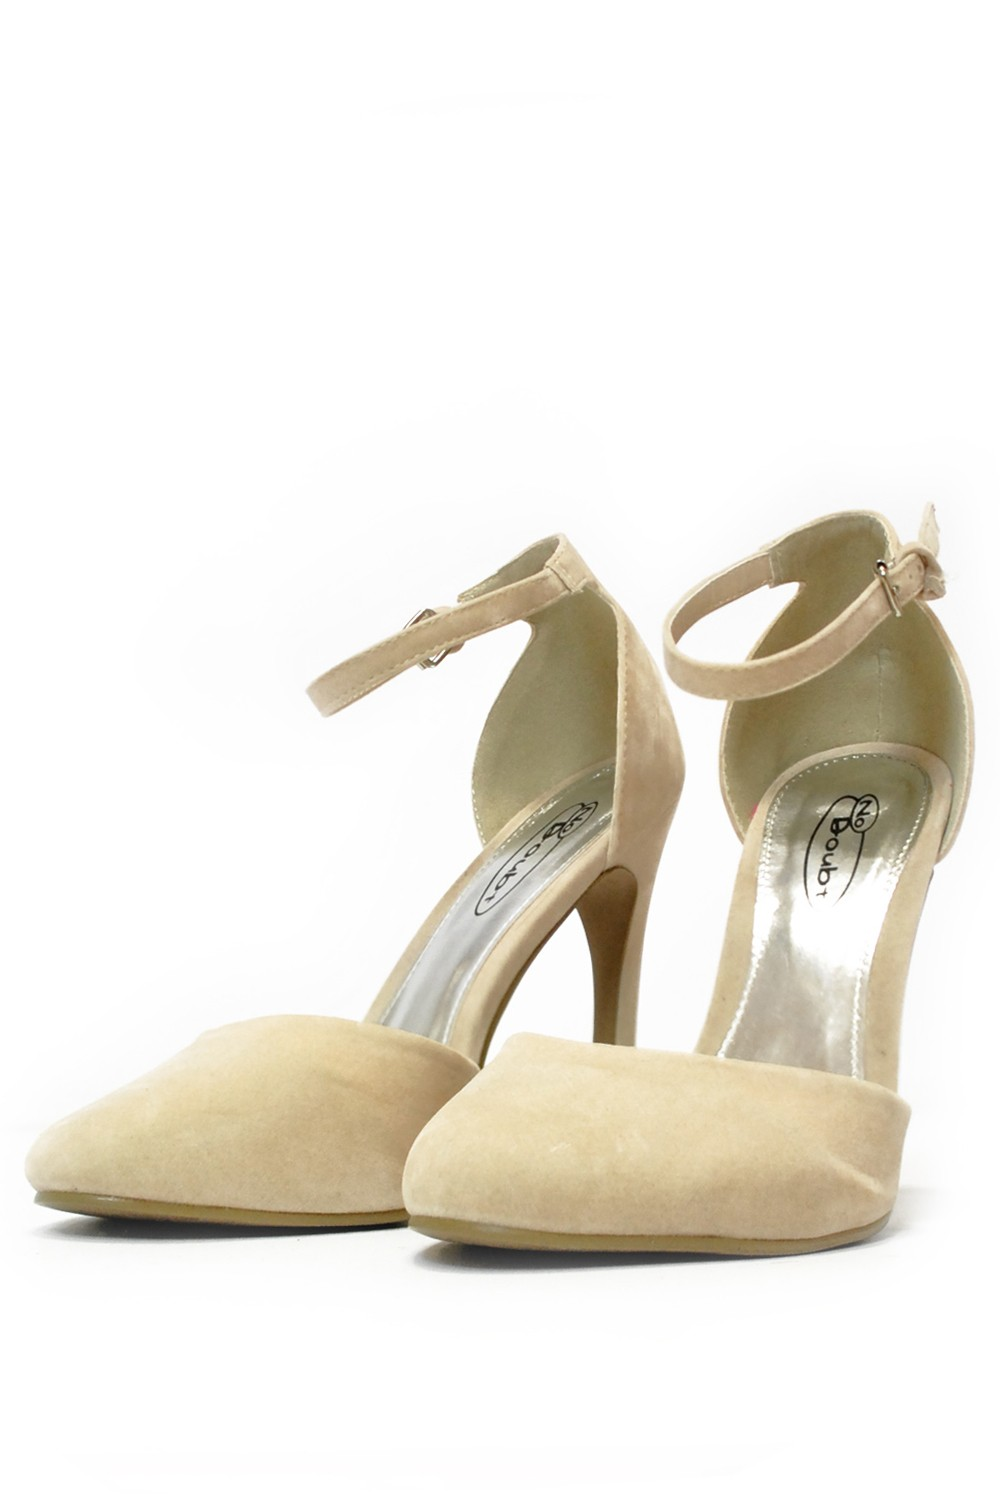 247 Nadia Ankle Strap Mid Heel Shoes in Cream | iCLOTHING